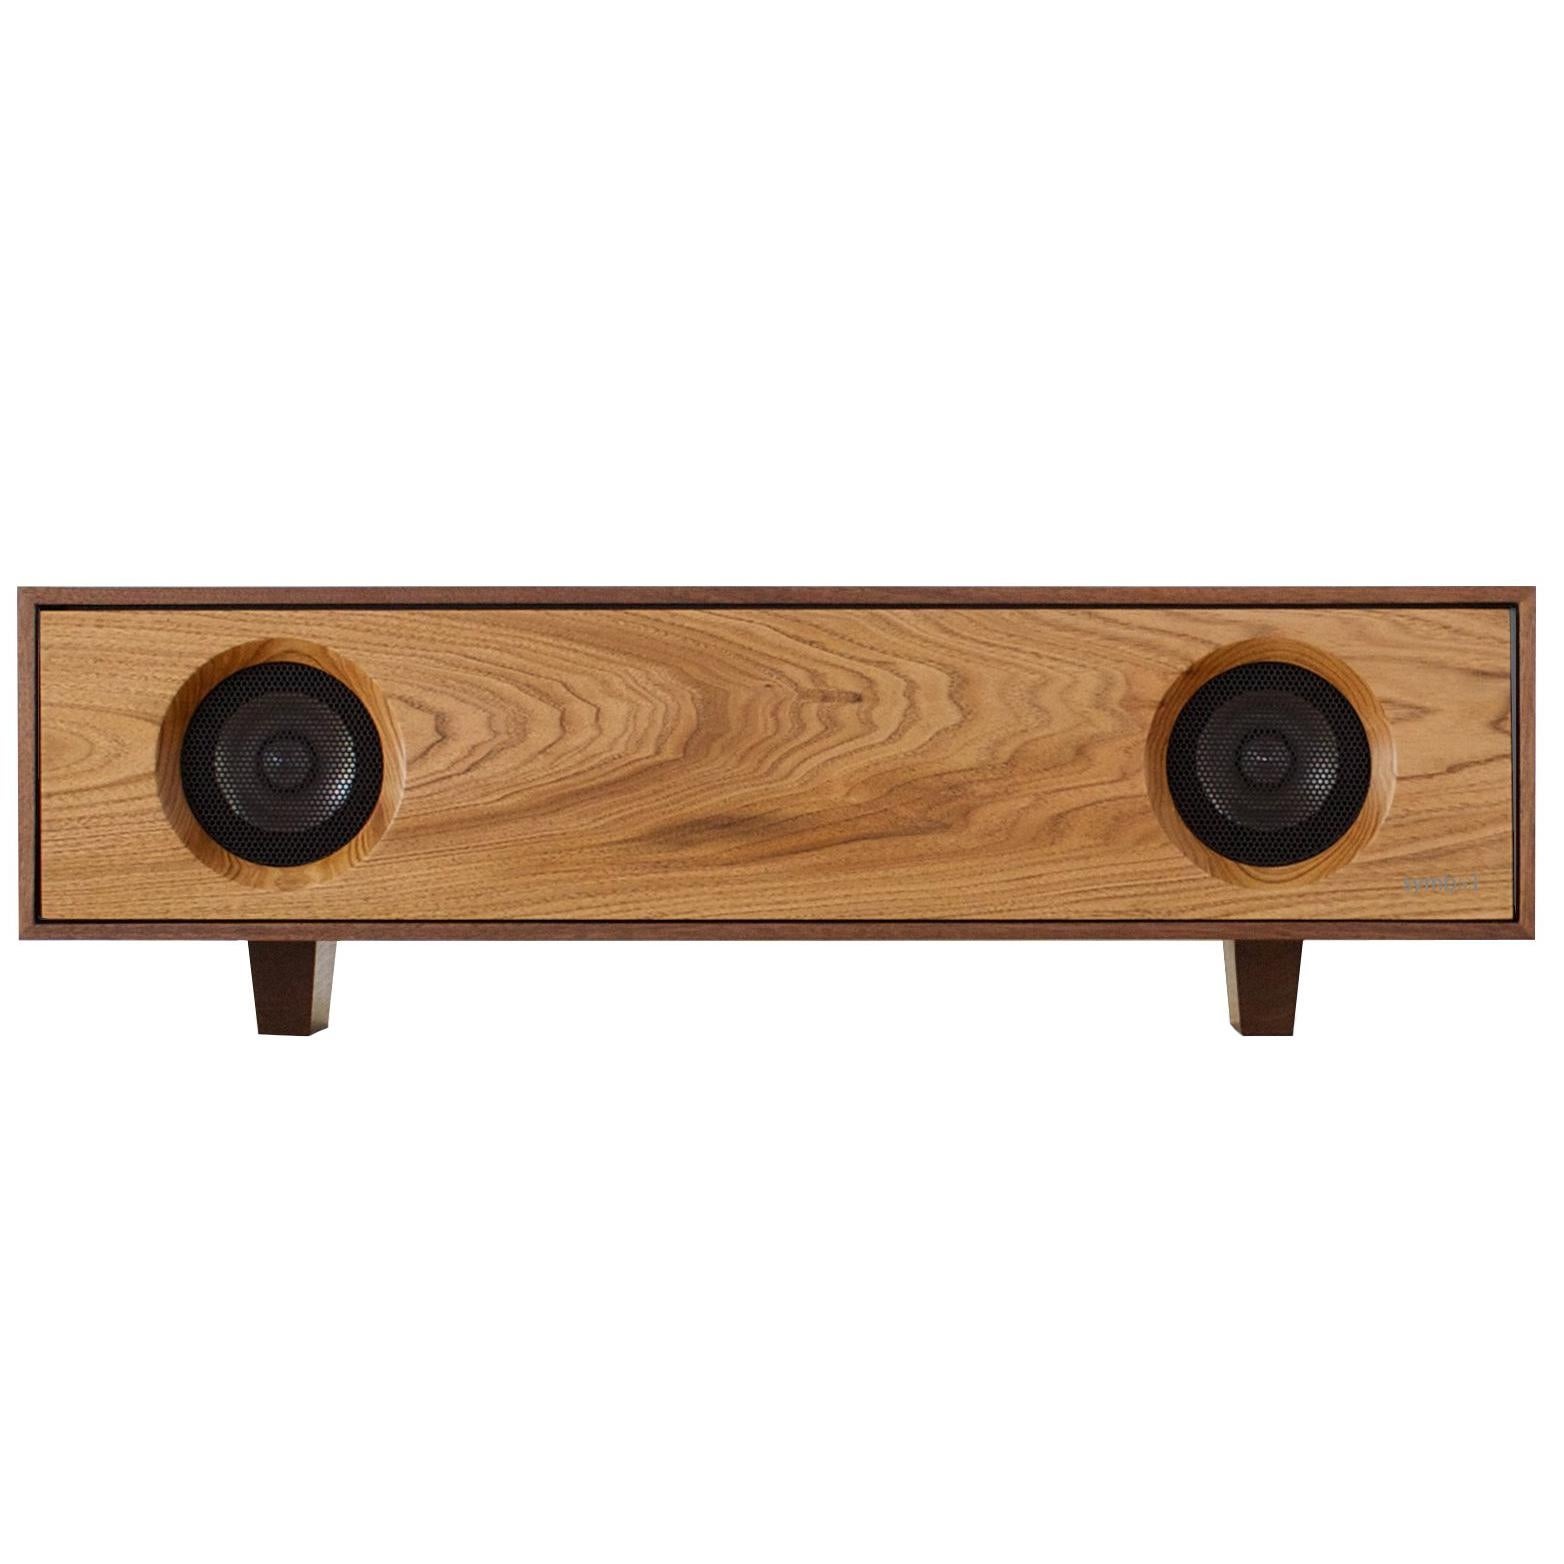 Tabletop hifi speaker jet black cabinet with natural oak speaker front for sale at 1stdibs